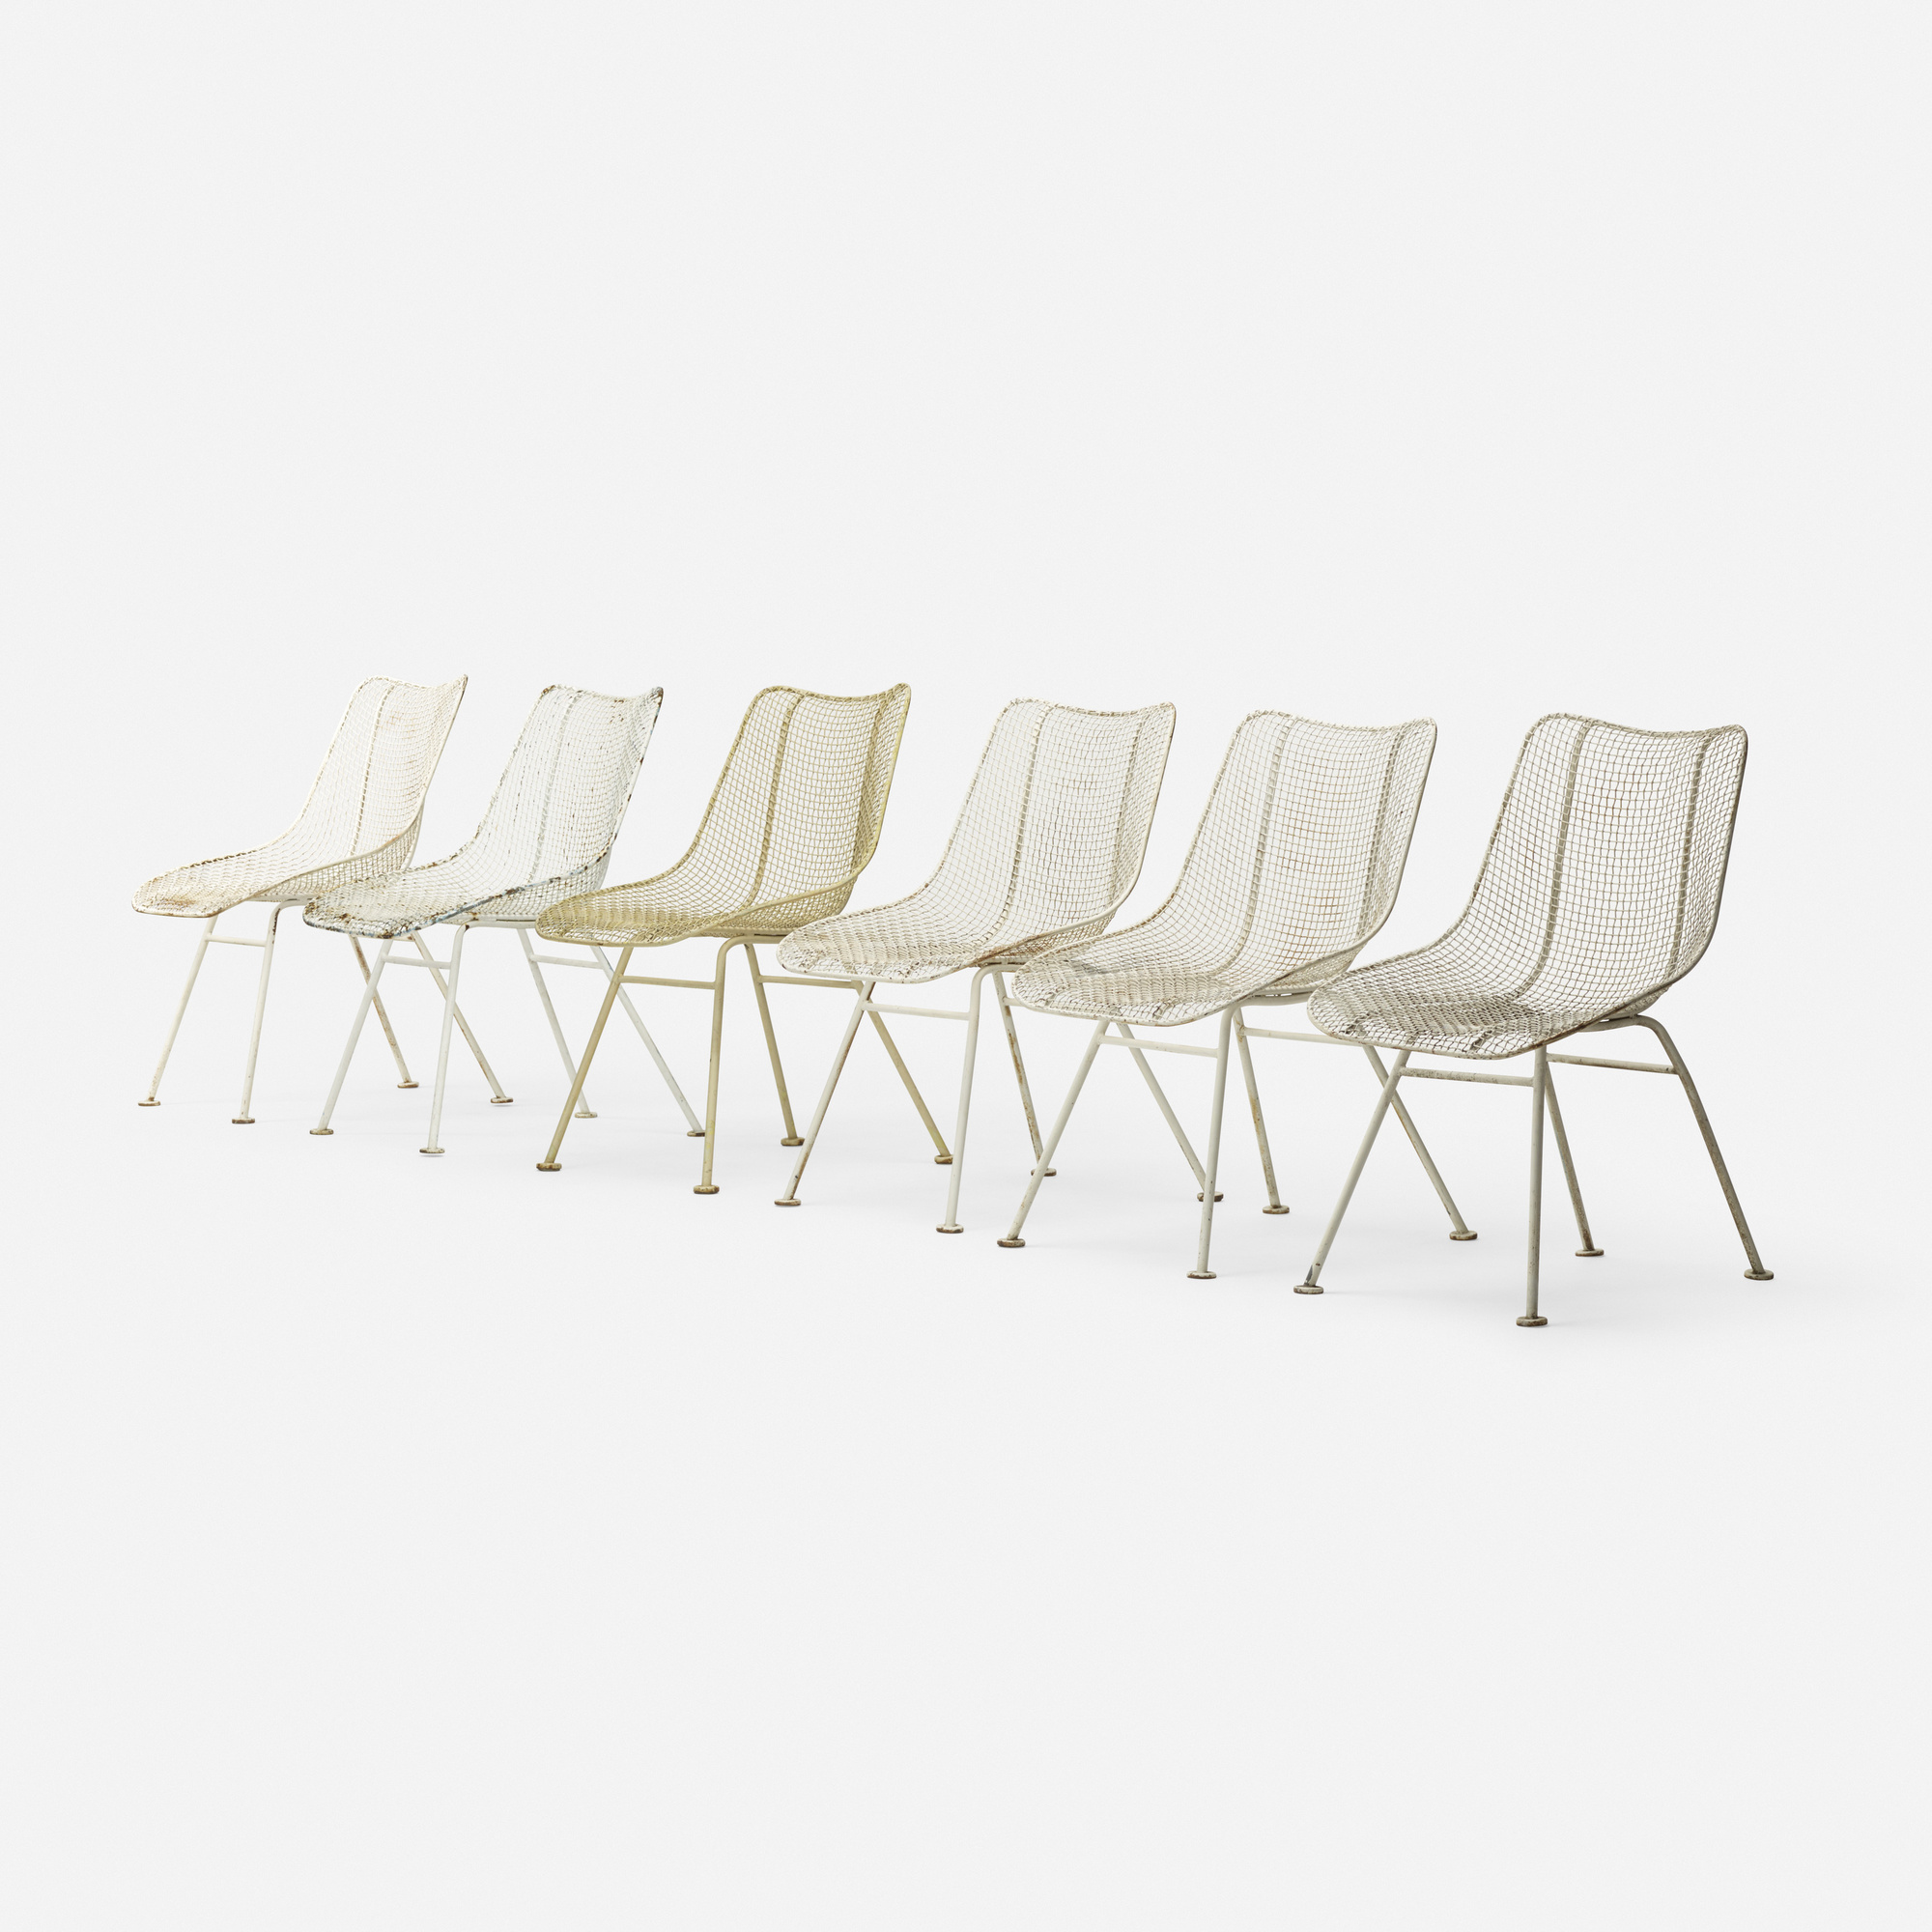 350: Russell Woodard / Sculptura dining chairs, set of six (1 of 3)